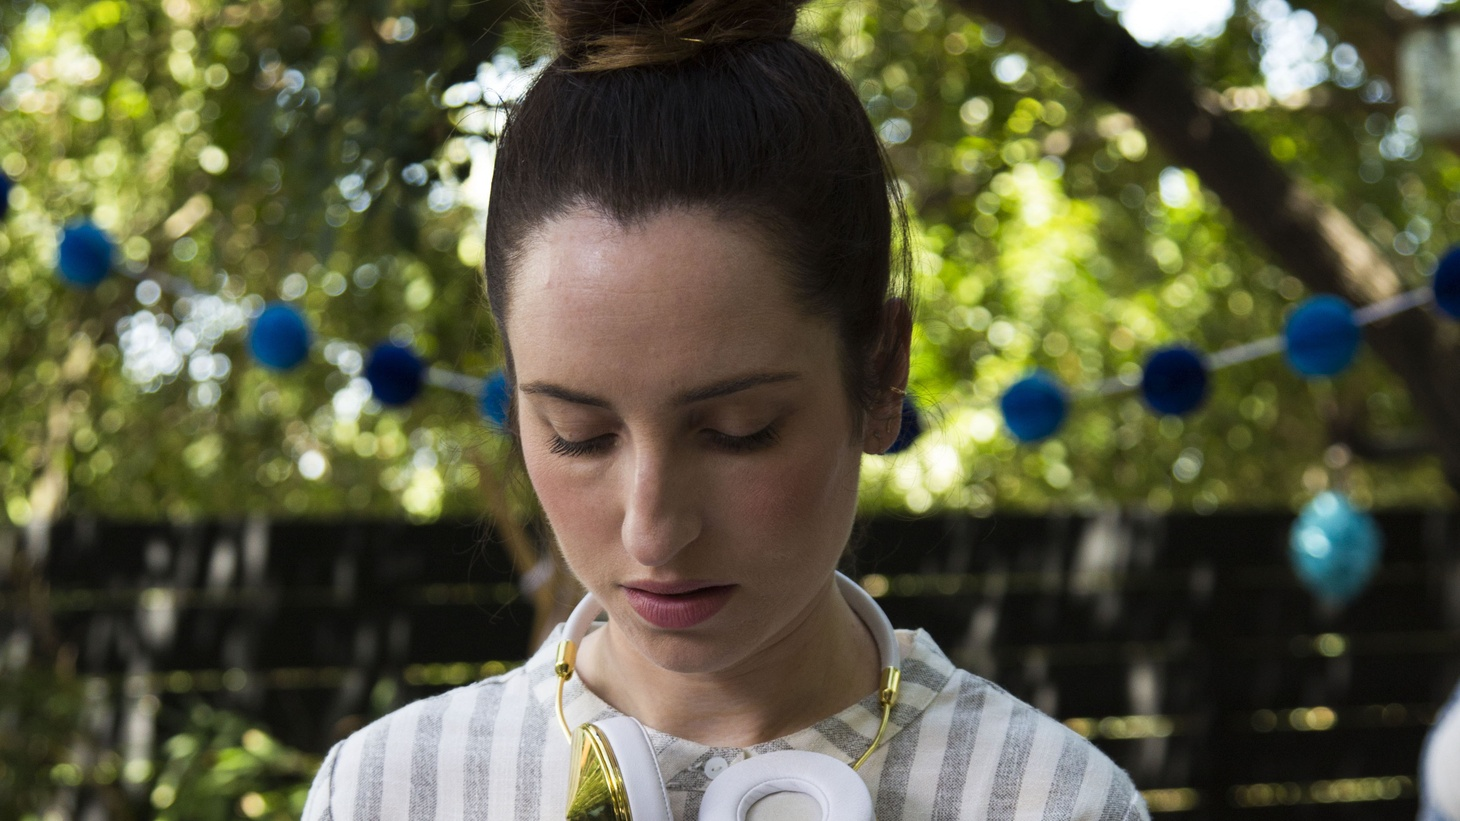 """Actress and director Zoe Lister-Jones discusses the energy on set with an all female crew behind her film """"Band Aid""""."""